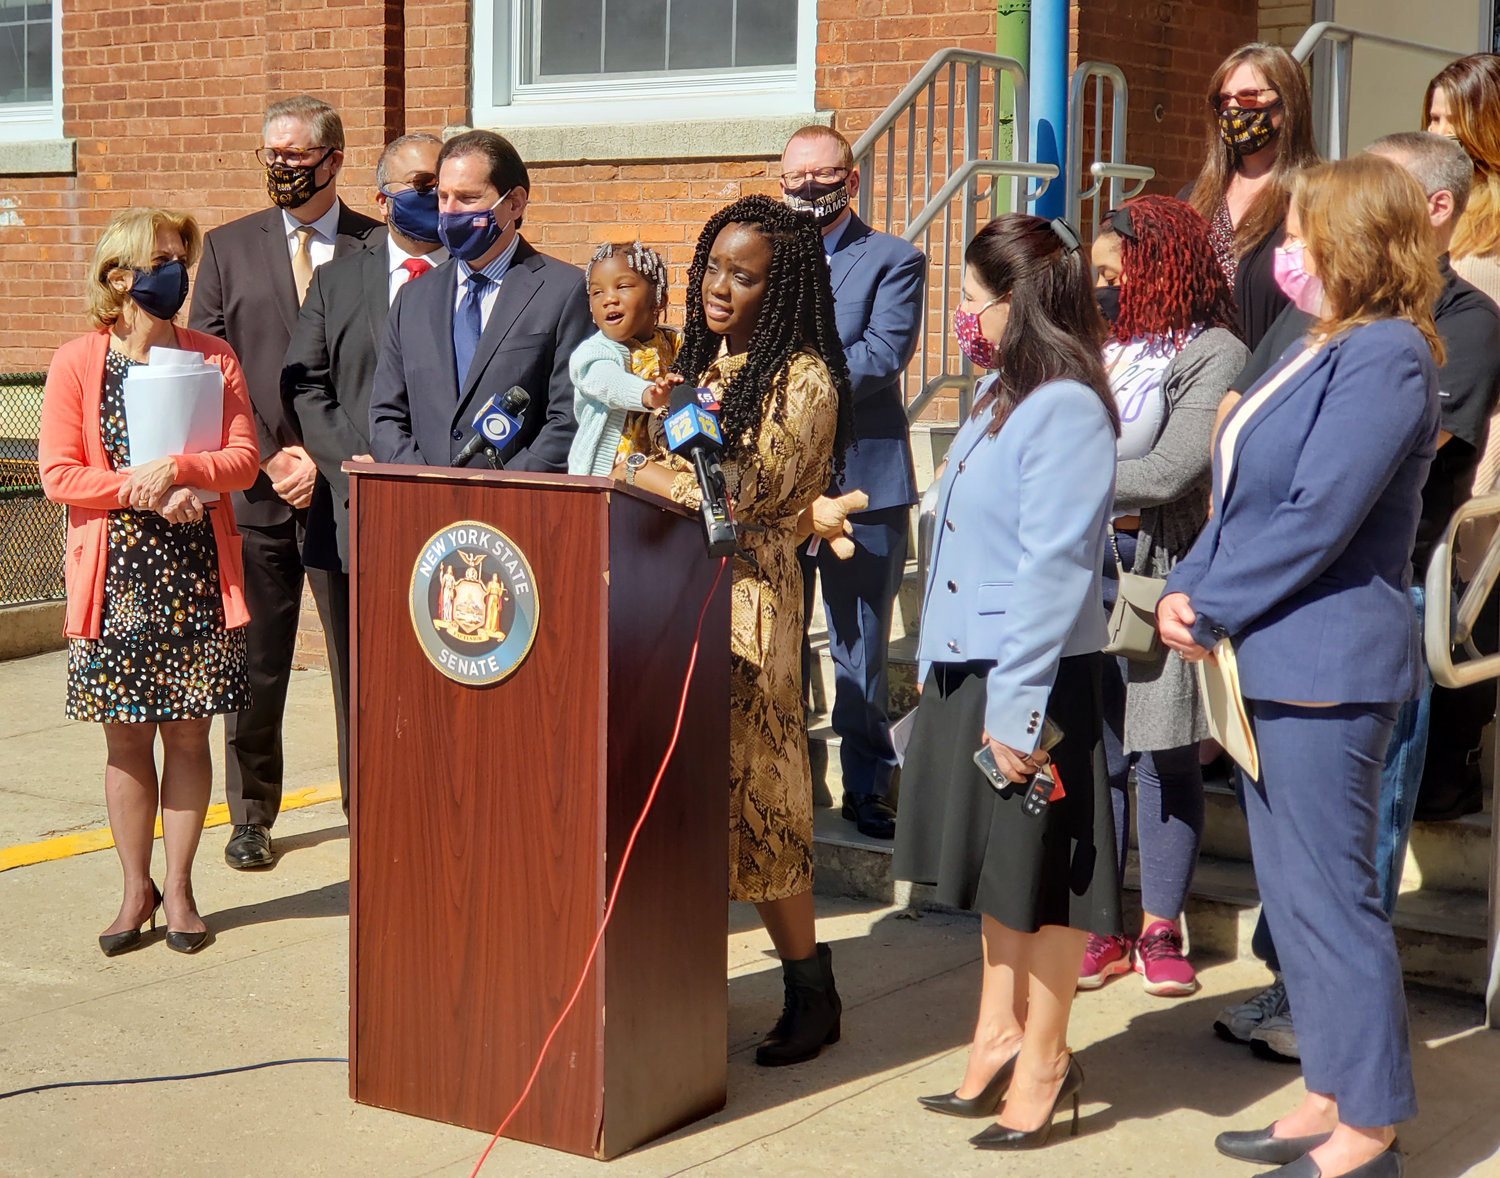 West Hempstead parent Oroma Mpi-Reynolds, at lectern, was excited for her 4-year-old daughter, Riley, to be a part of Chestnut Street School's pre-K program.